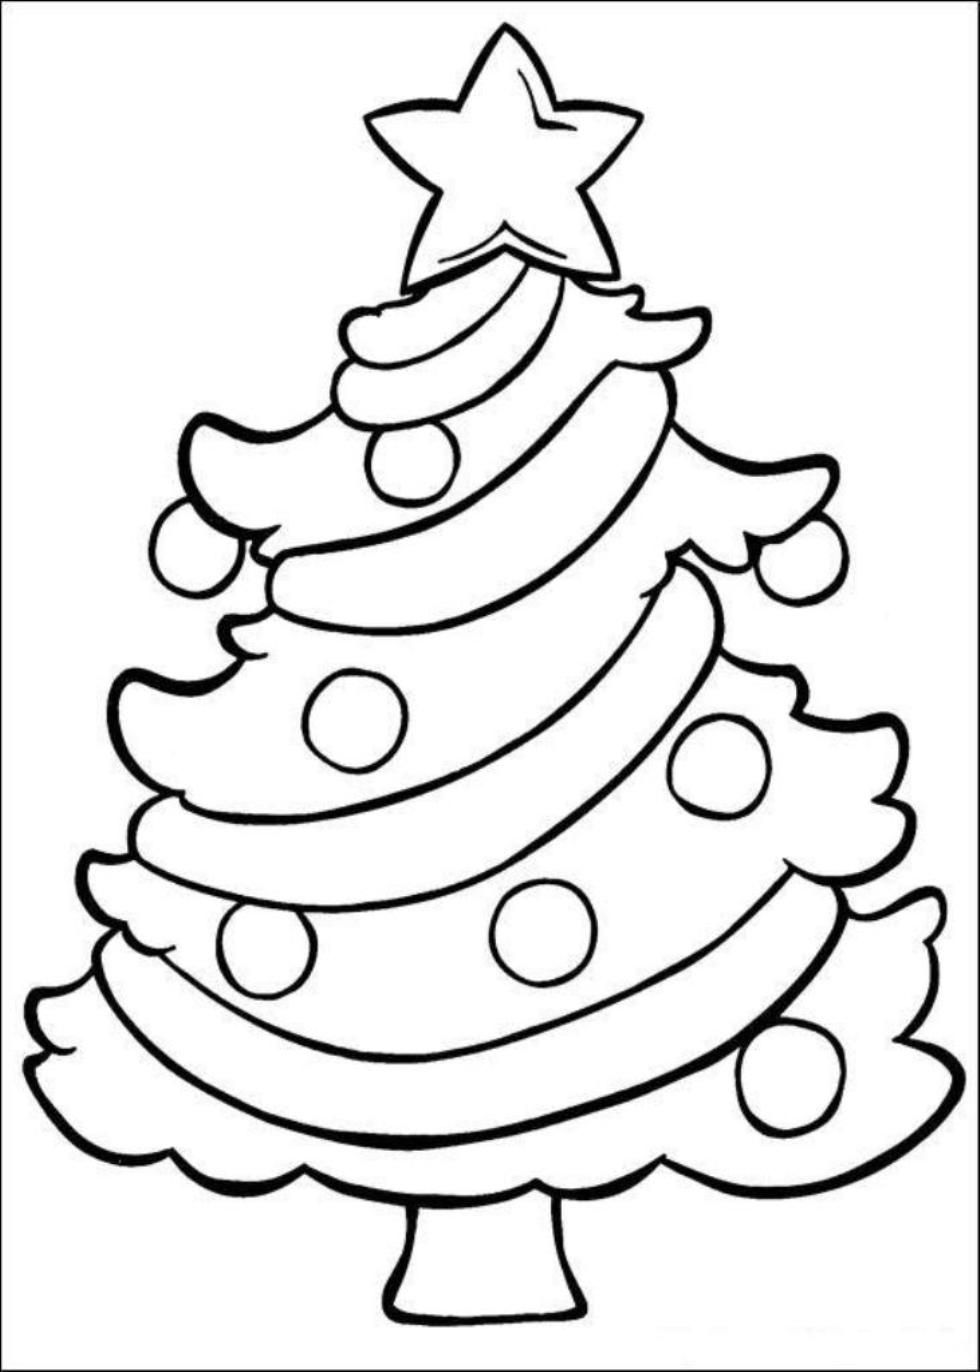 Coloring pages xmas decorations - Christian Christmas Coloring Pages